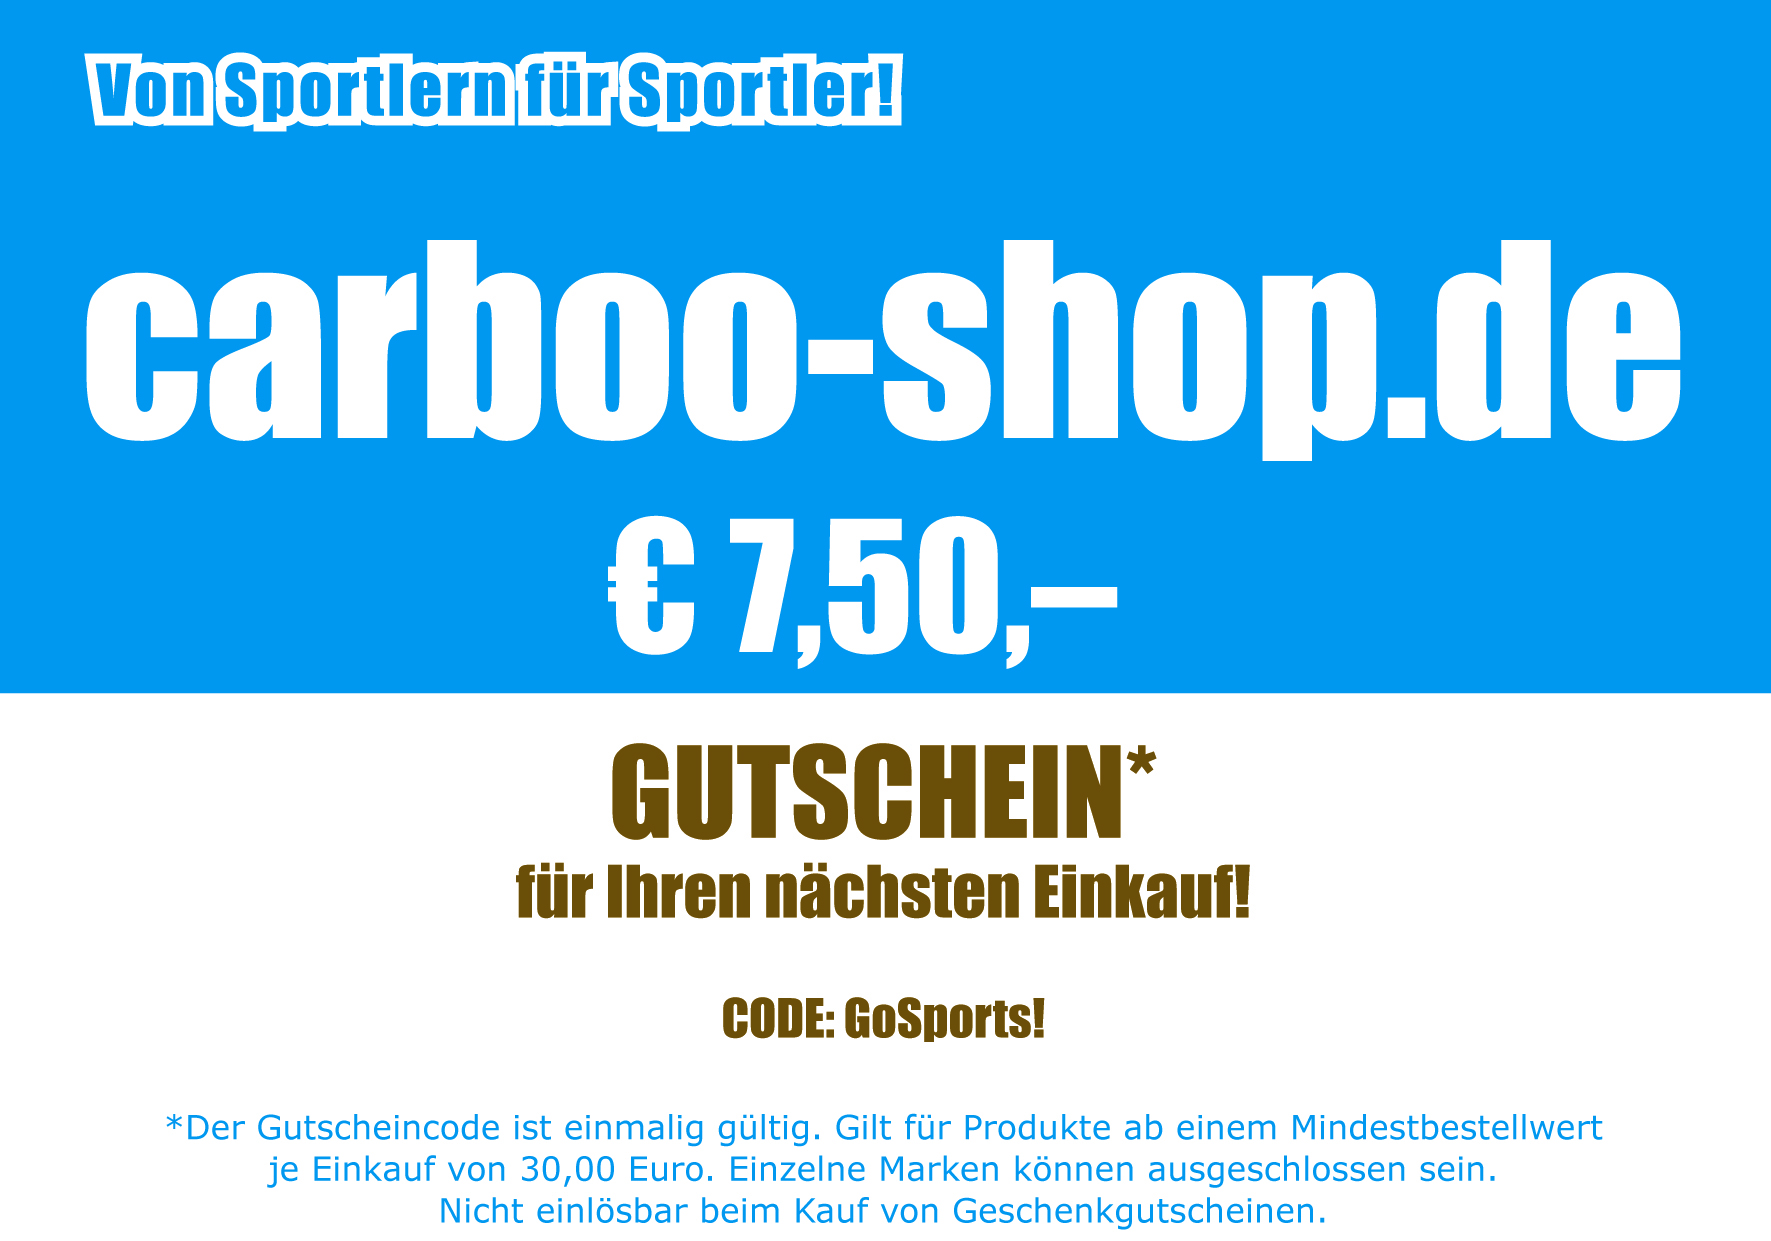 Gutschein - Carboo4U - carboo-shop.de - Carboo4U Performance